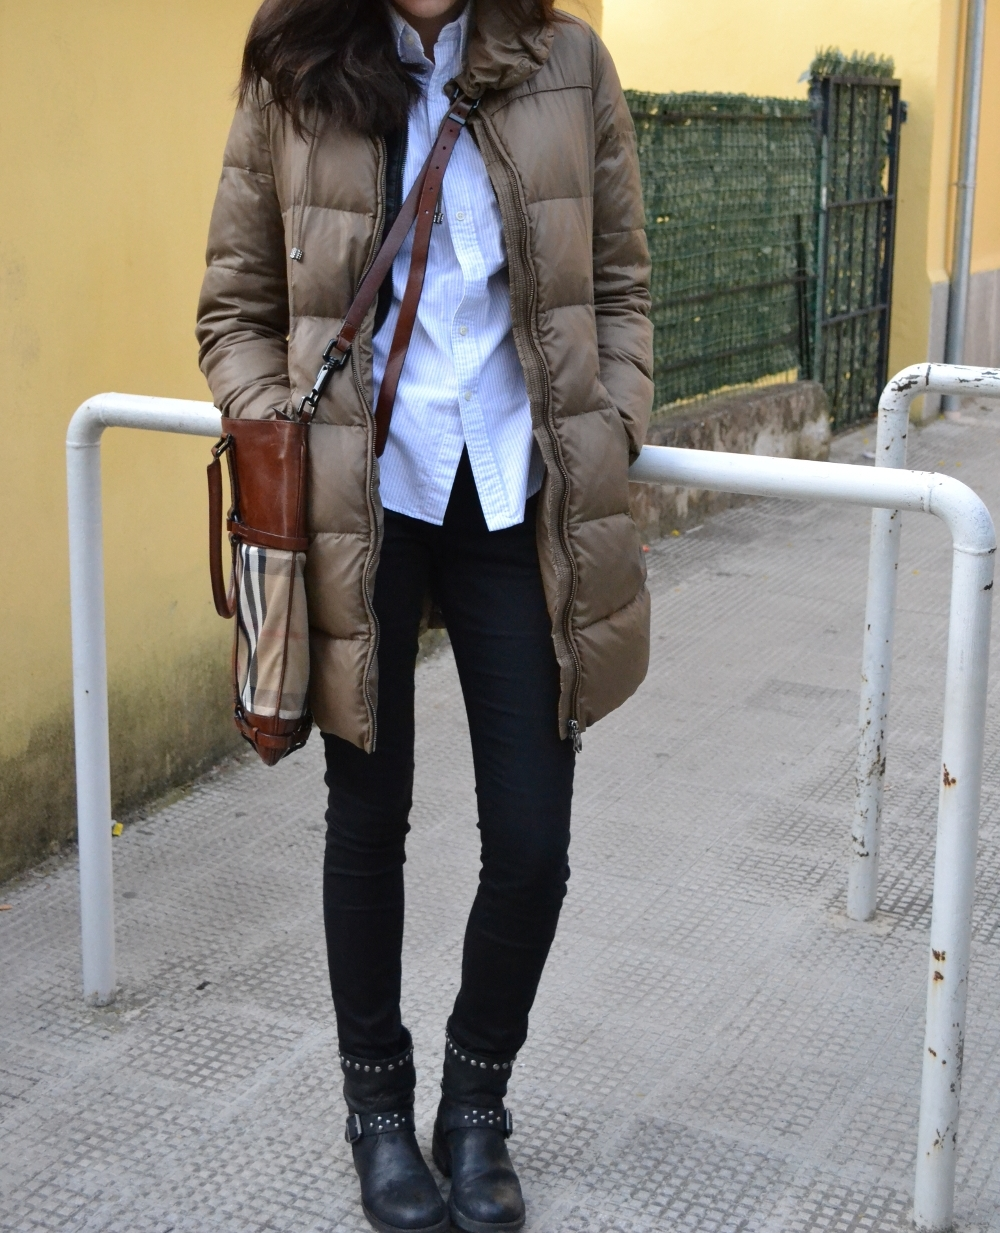 zara skinny pants, ralph lauren shirt, zhero down jacket